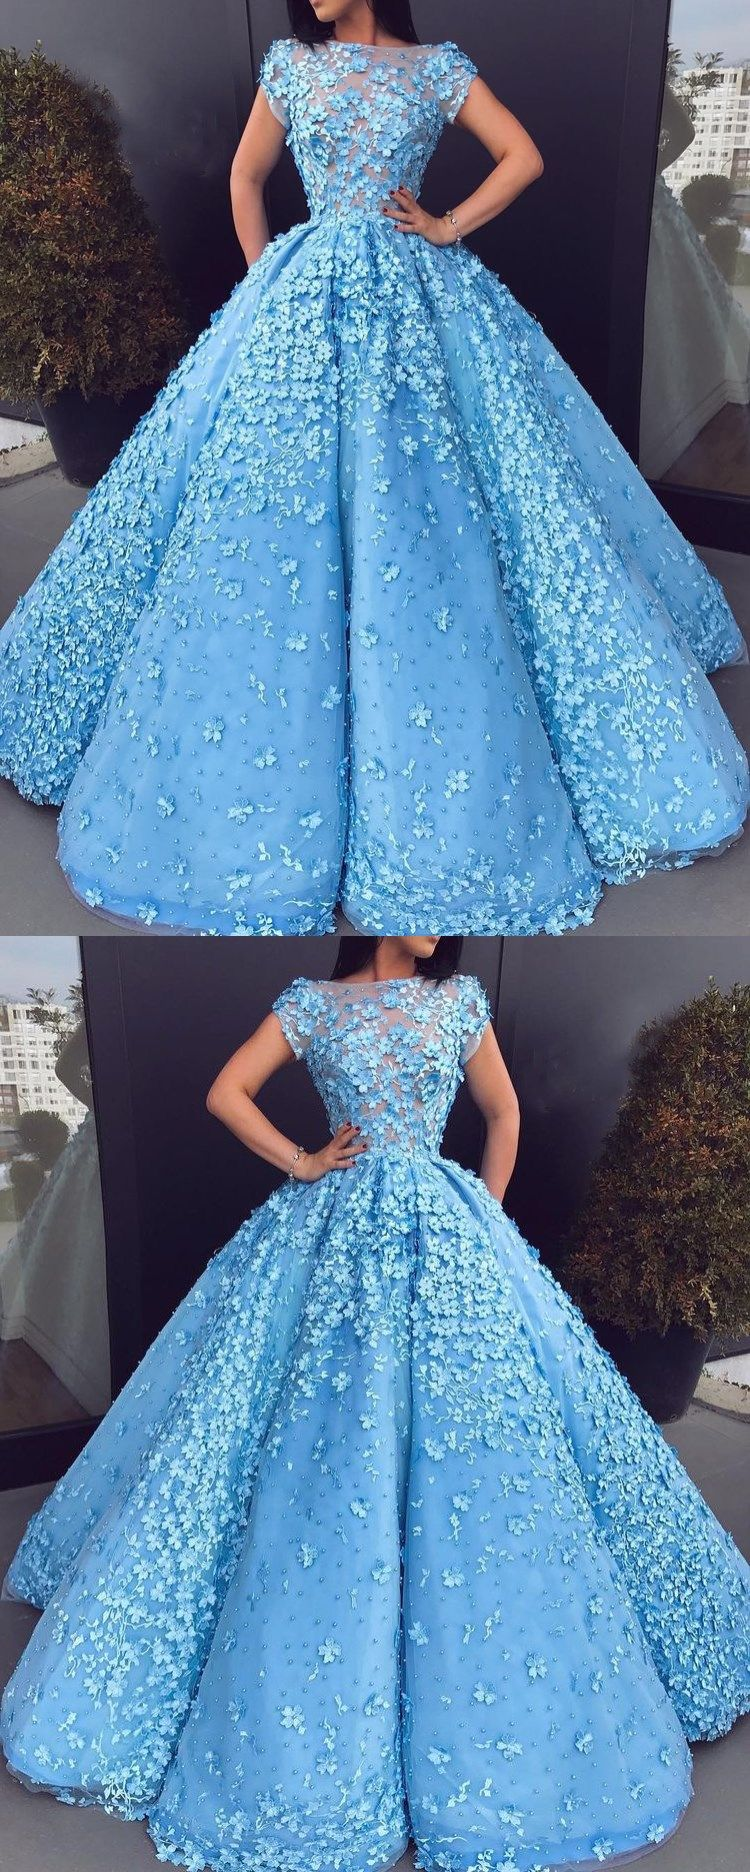 Beautiful prom dresses blue floral lace bateau long ball gown prom